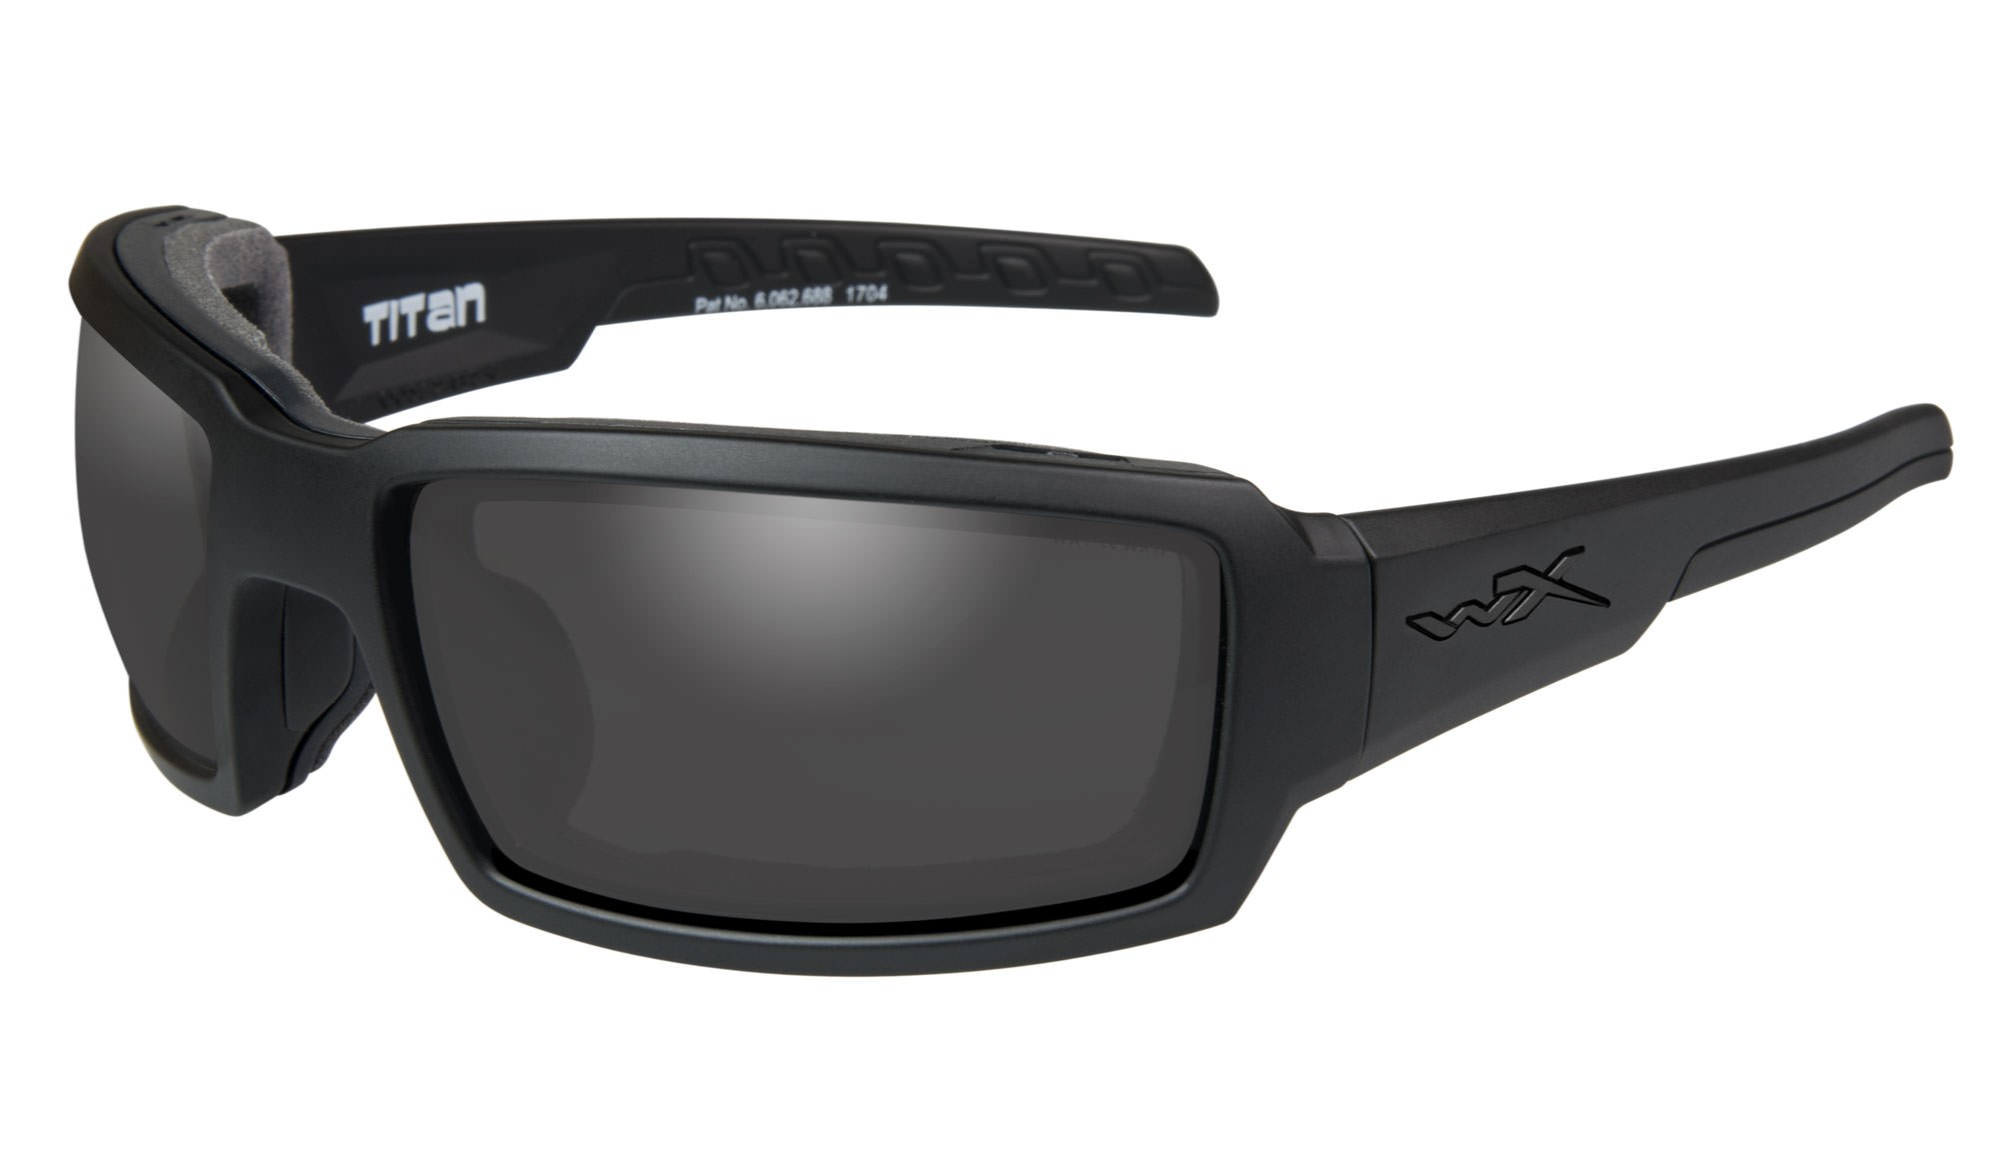 3eb85e07e1b4 Wiley-X WX Titan Matte Black with Smoke Grey Lenses | Wiley X